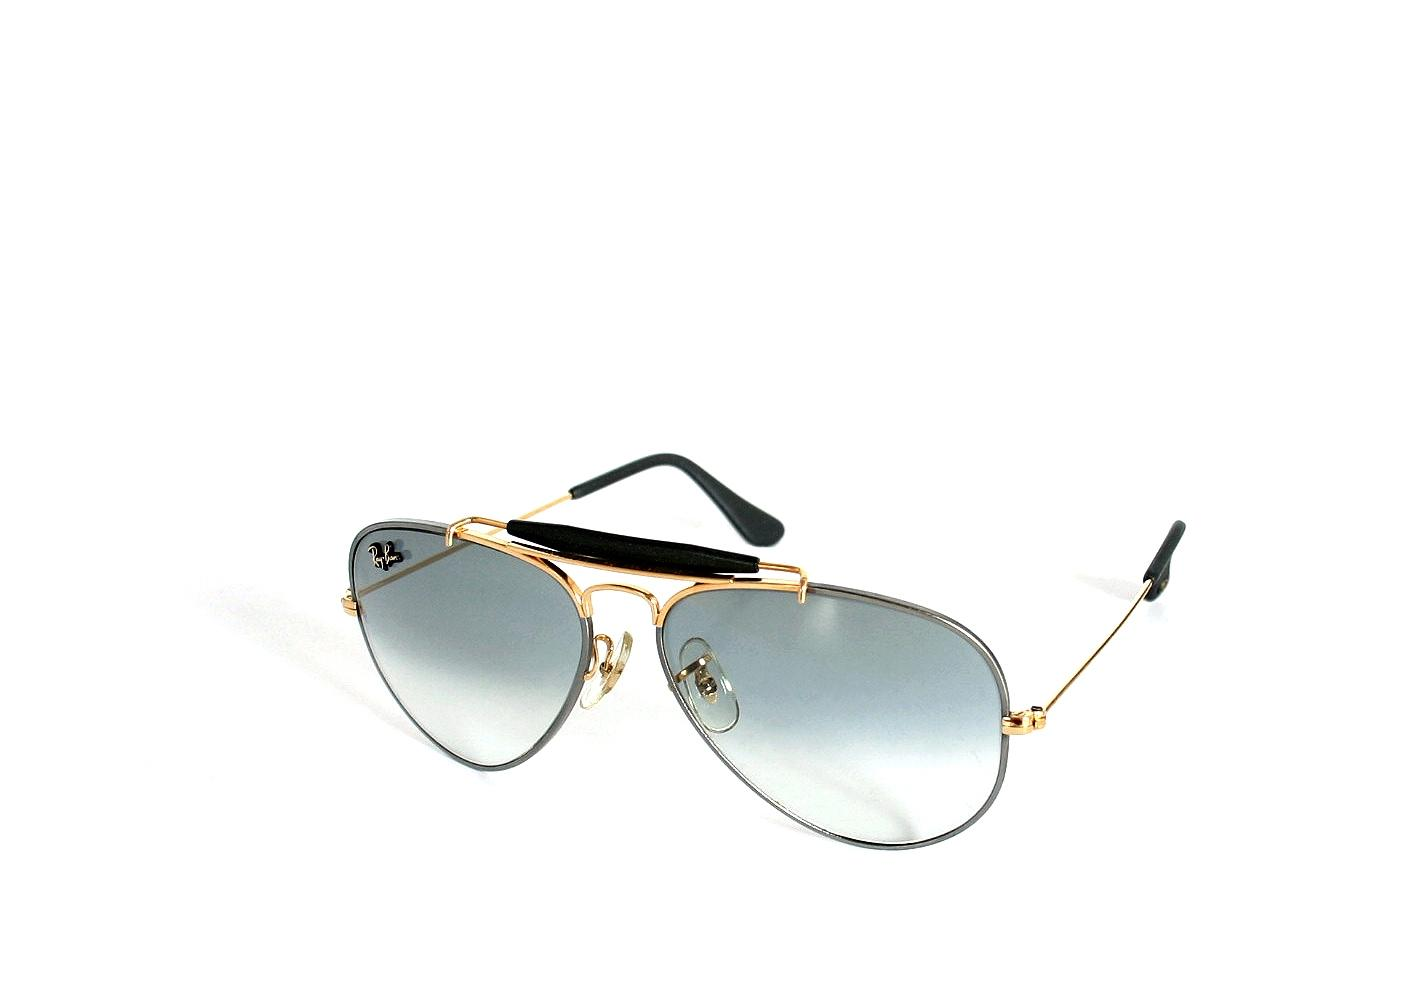 0847cd5867e good rare vintage rayban precious metal silver gold bl usa 5e269 1bb4a   coupon ray ban ray ban vintage precious metals special edition b l  sunglasses 6be8e ...